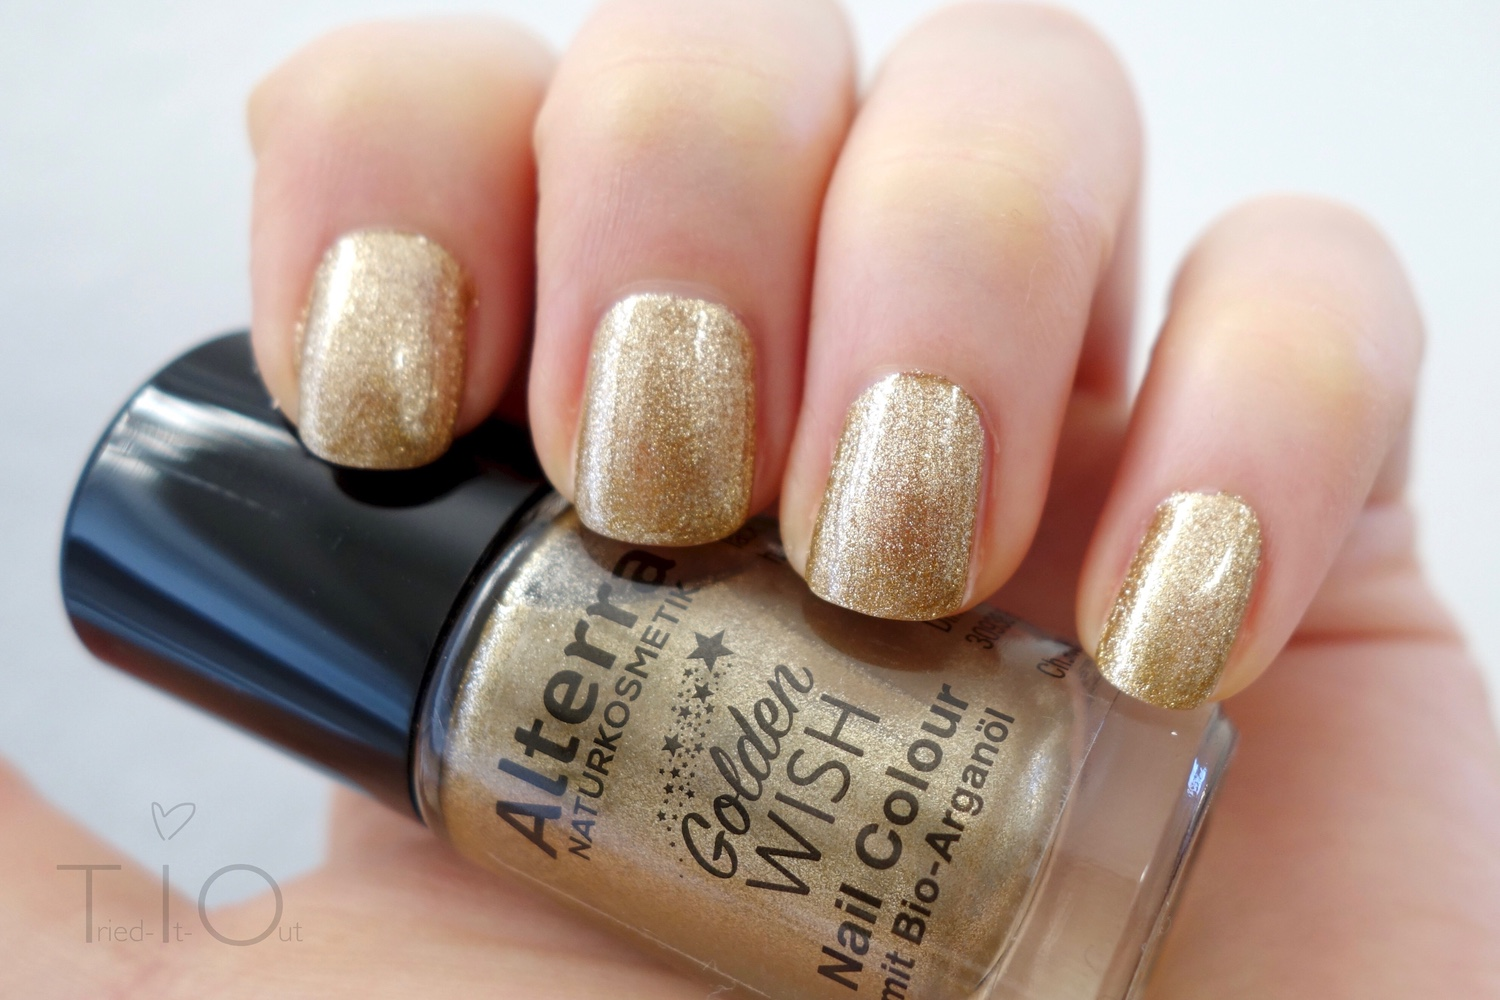 alterra_golden_wish_5free_nagellack